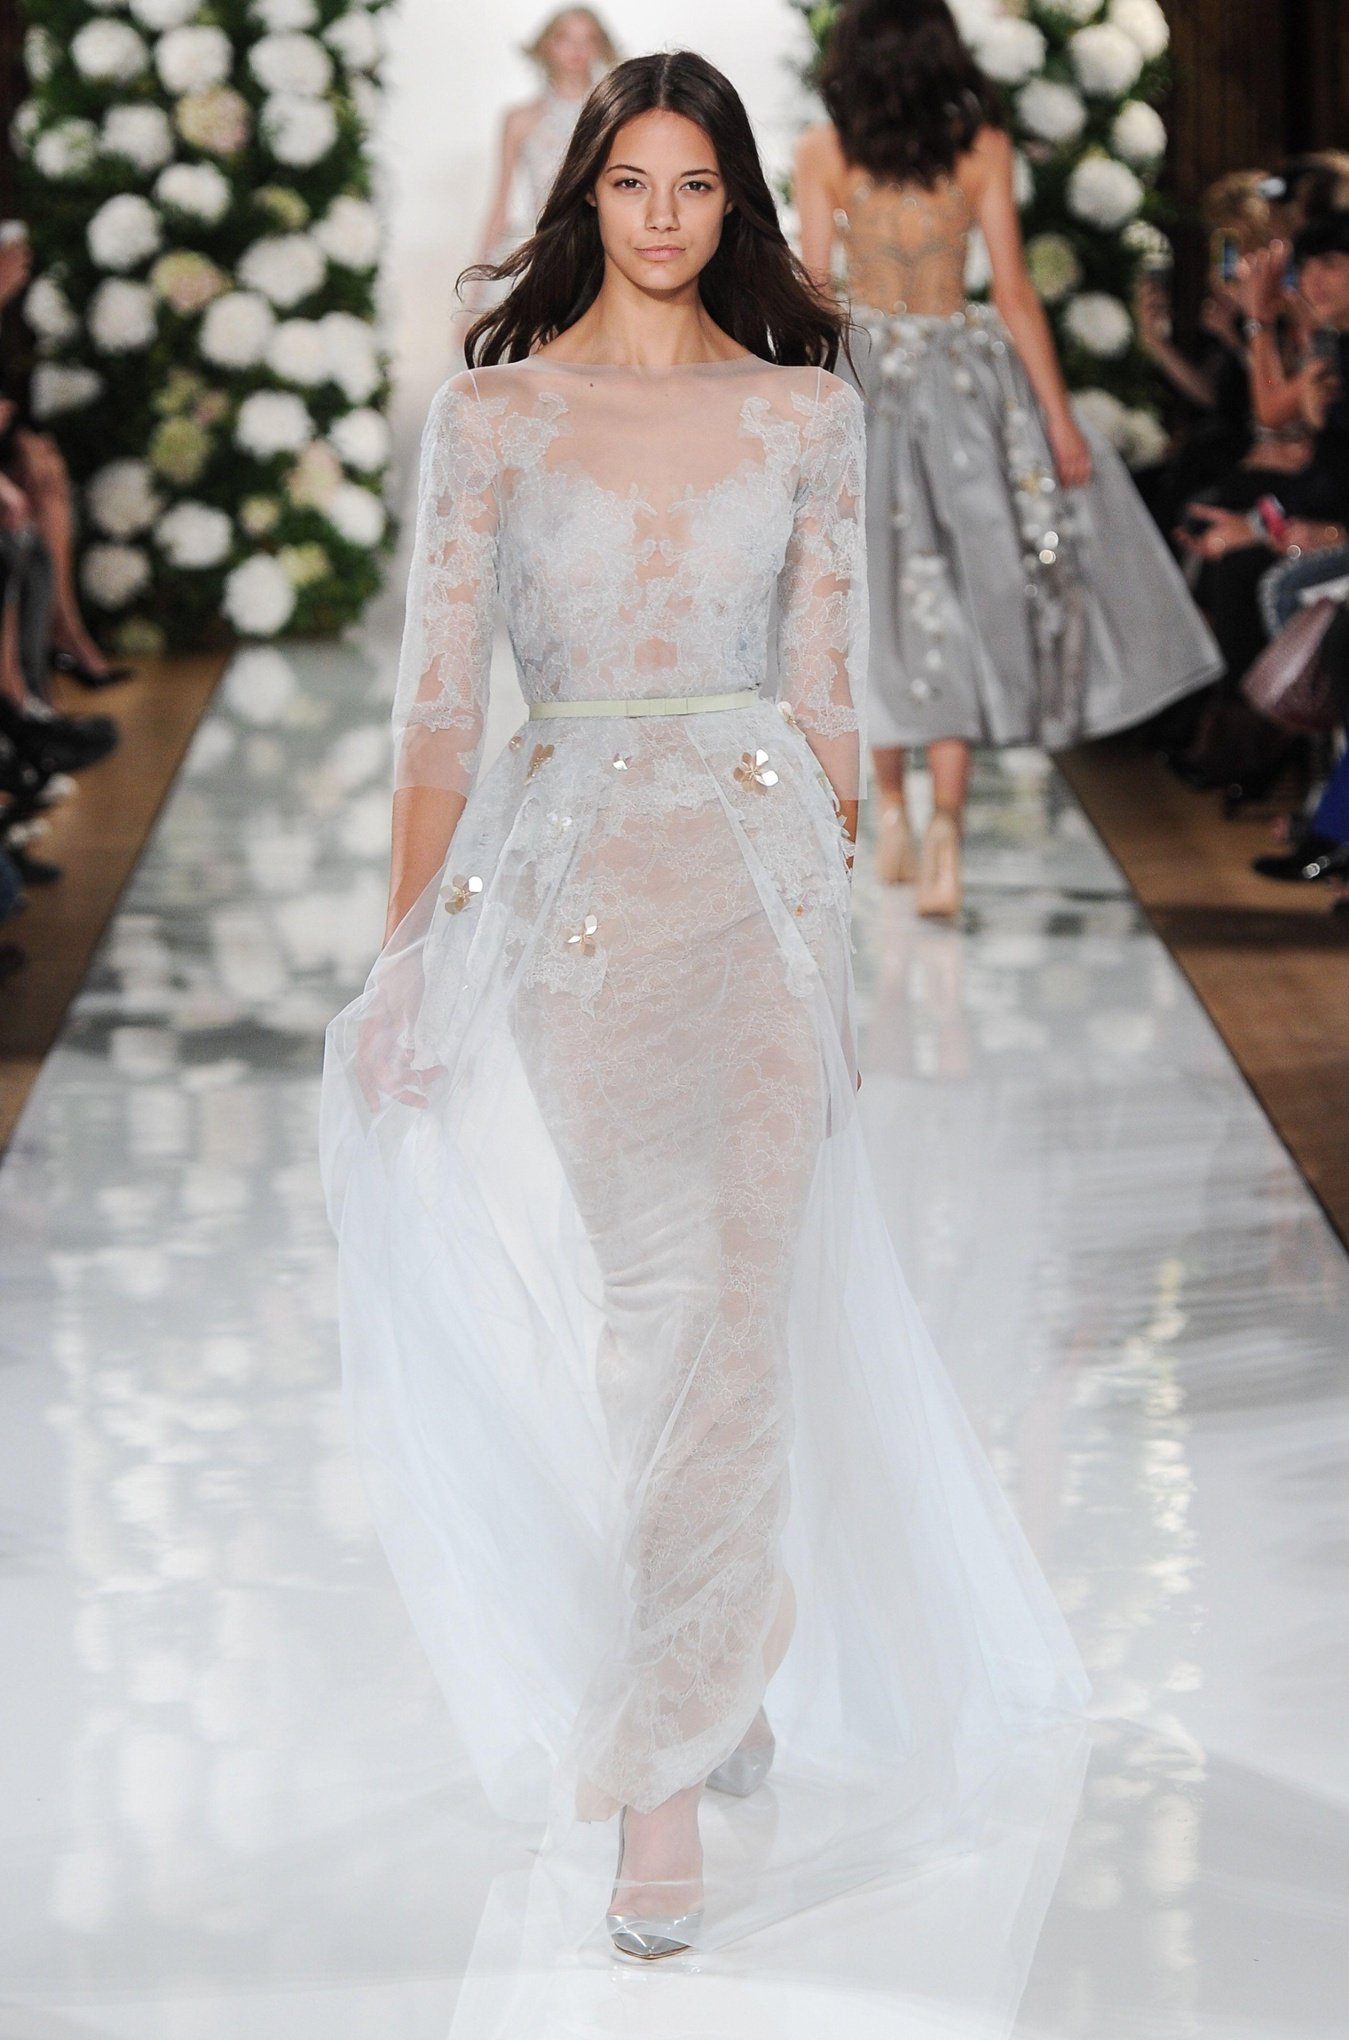 Wedding dress inspiration from the spring/summer 2015 ...